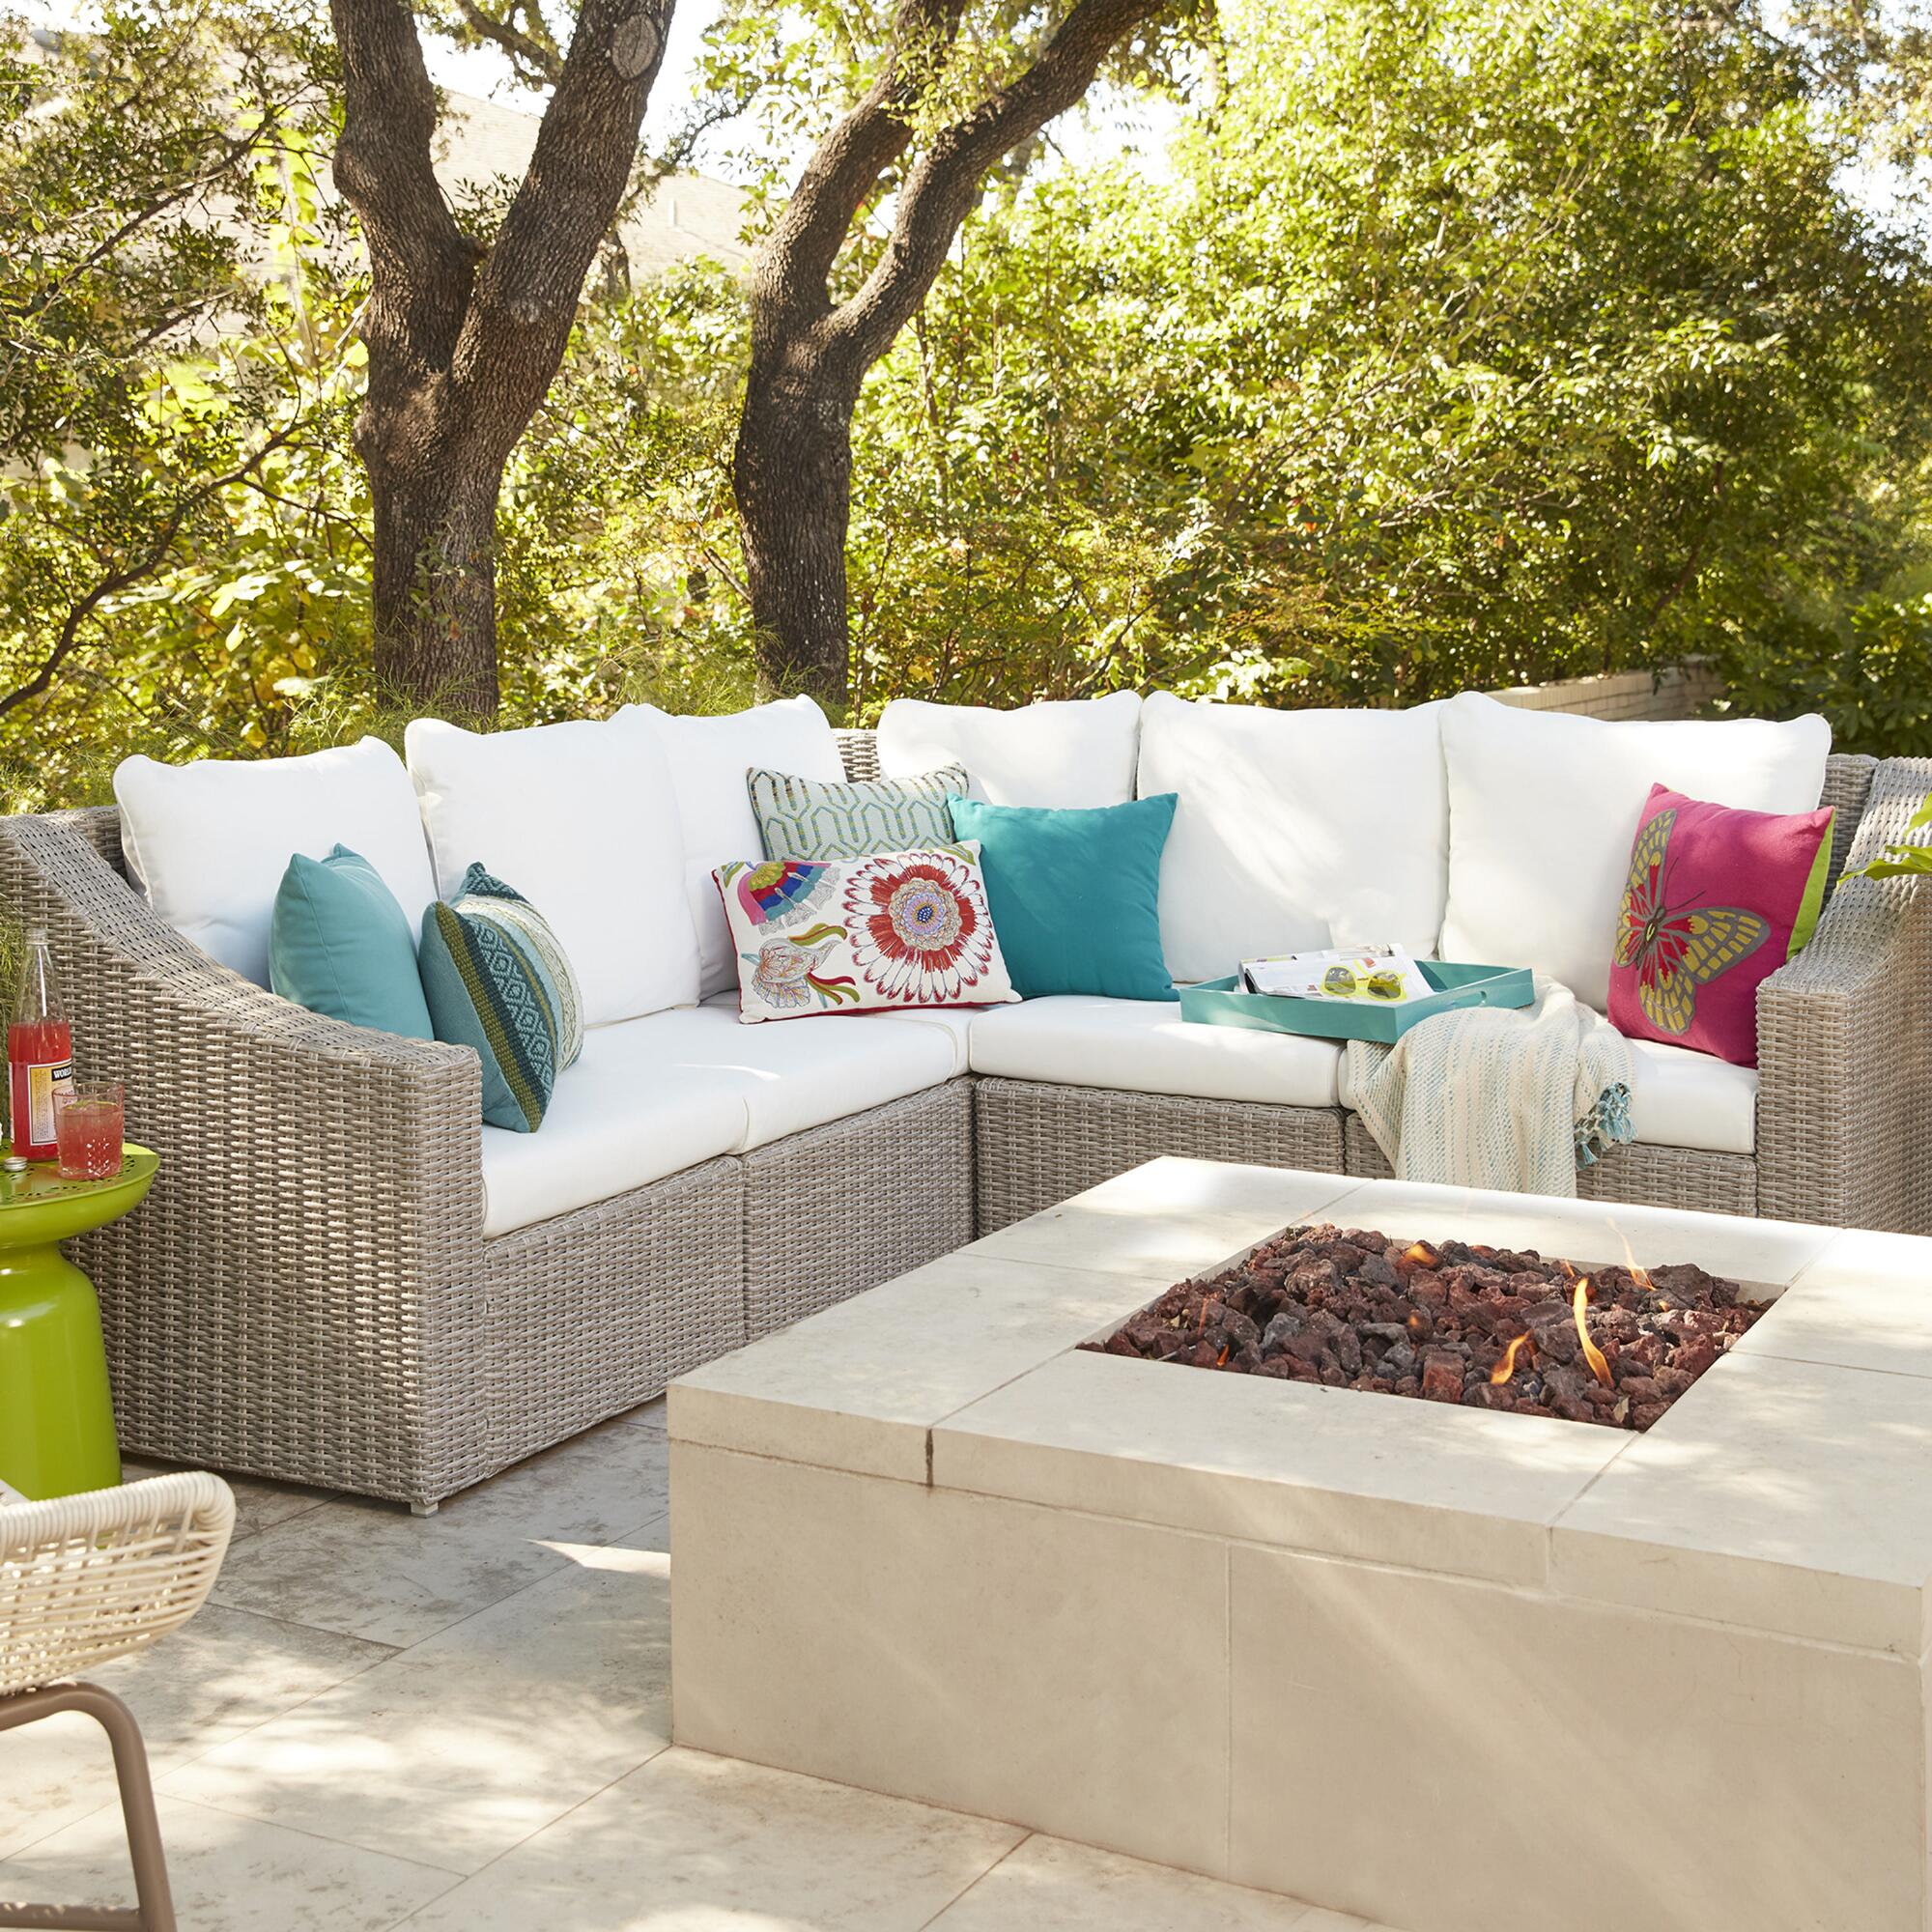 sunbrella dawson spa fabric green piece p outdoor cushions sectional seating sets conversation sectionals patio with ae set